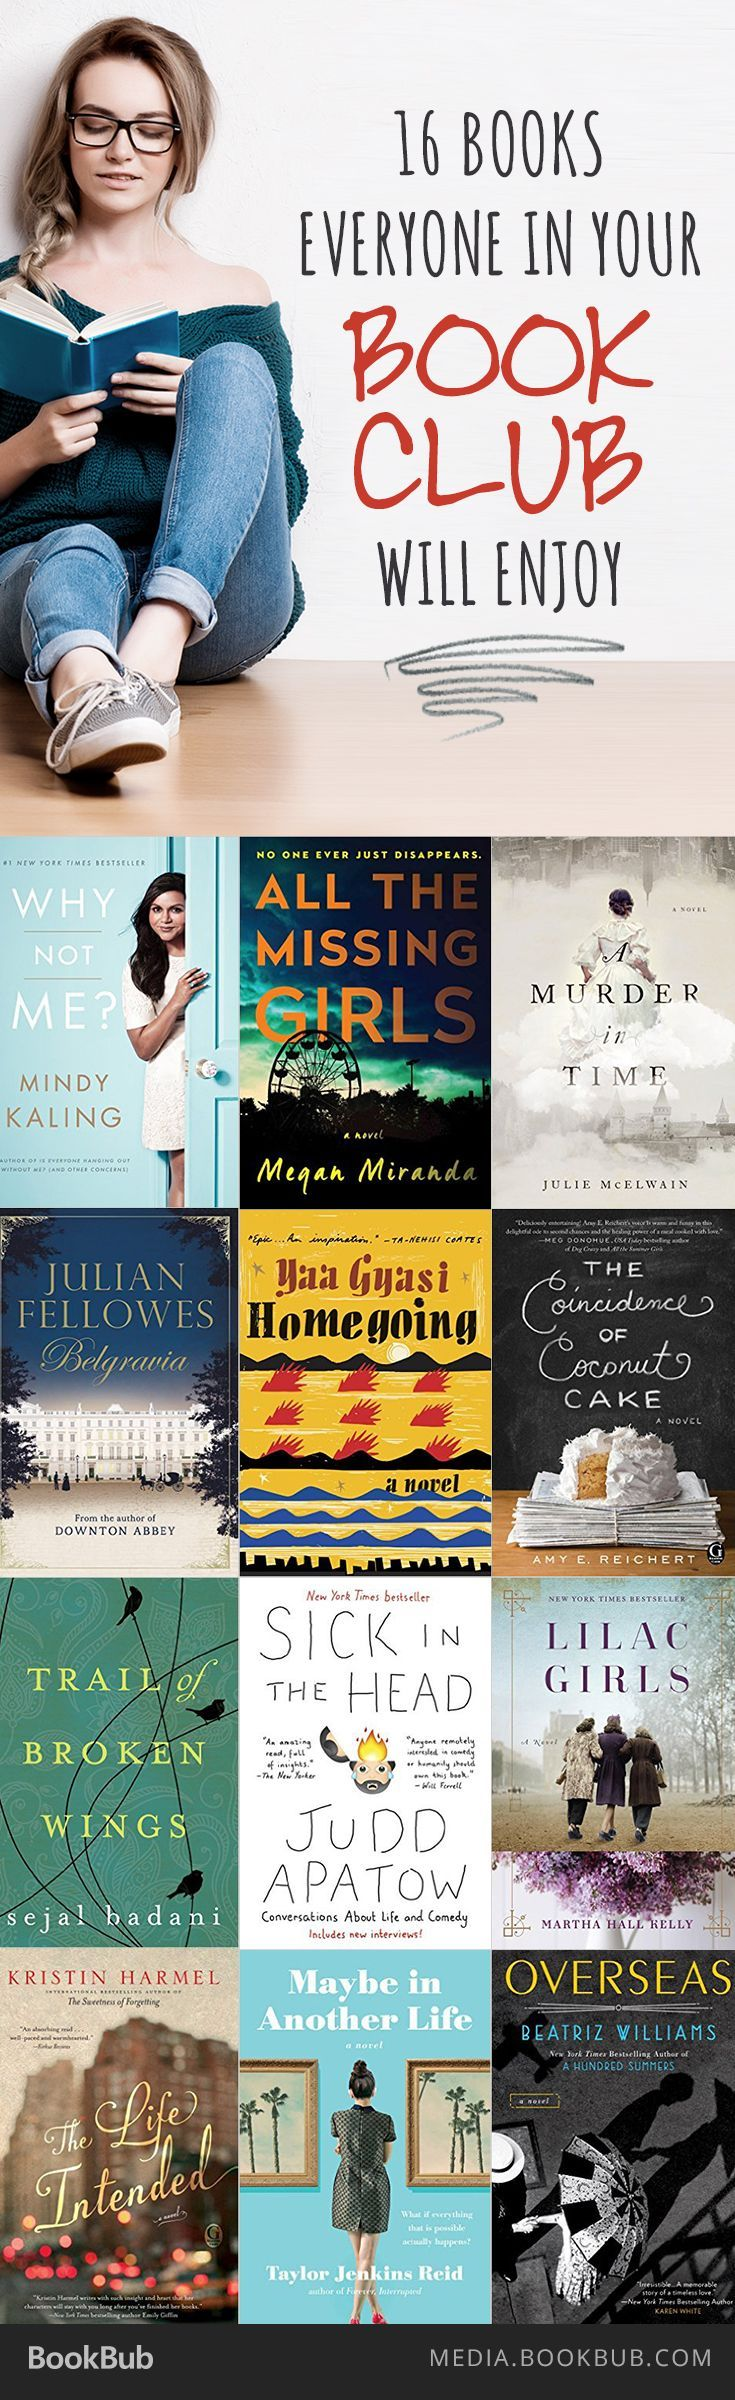 Is your book club looking for their next read? Check out this list of 16 books that everyone will enjoy.